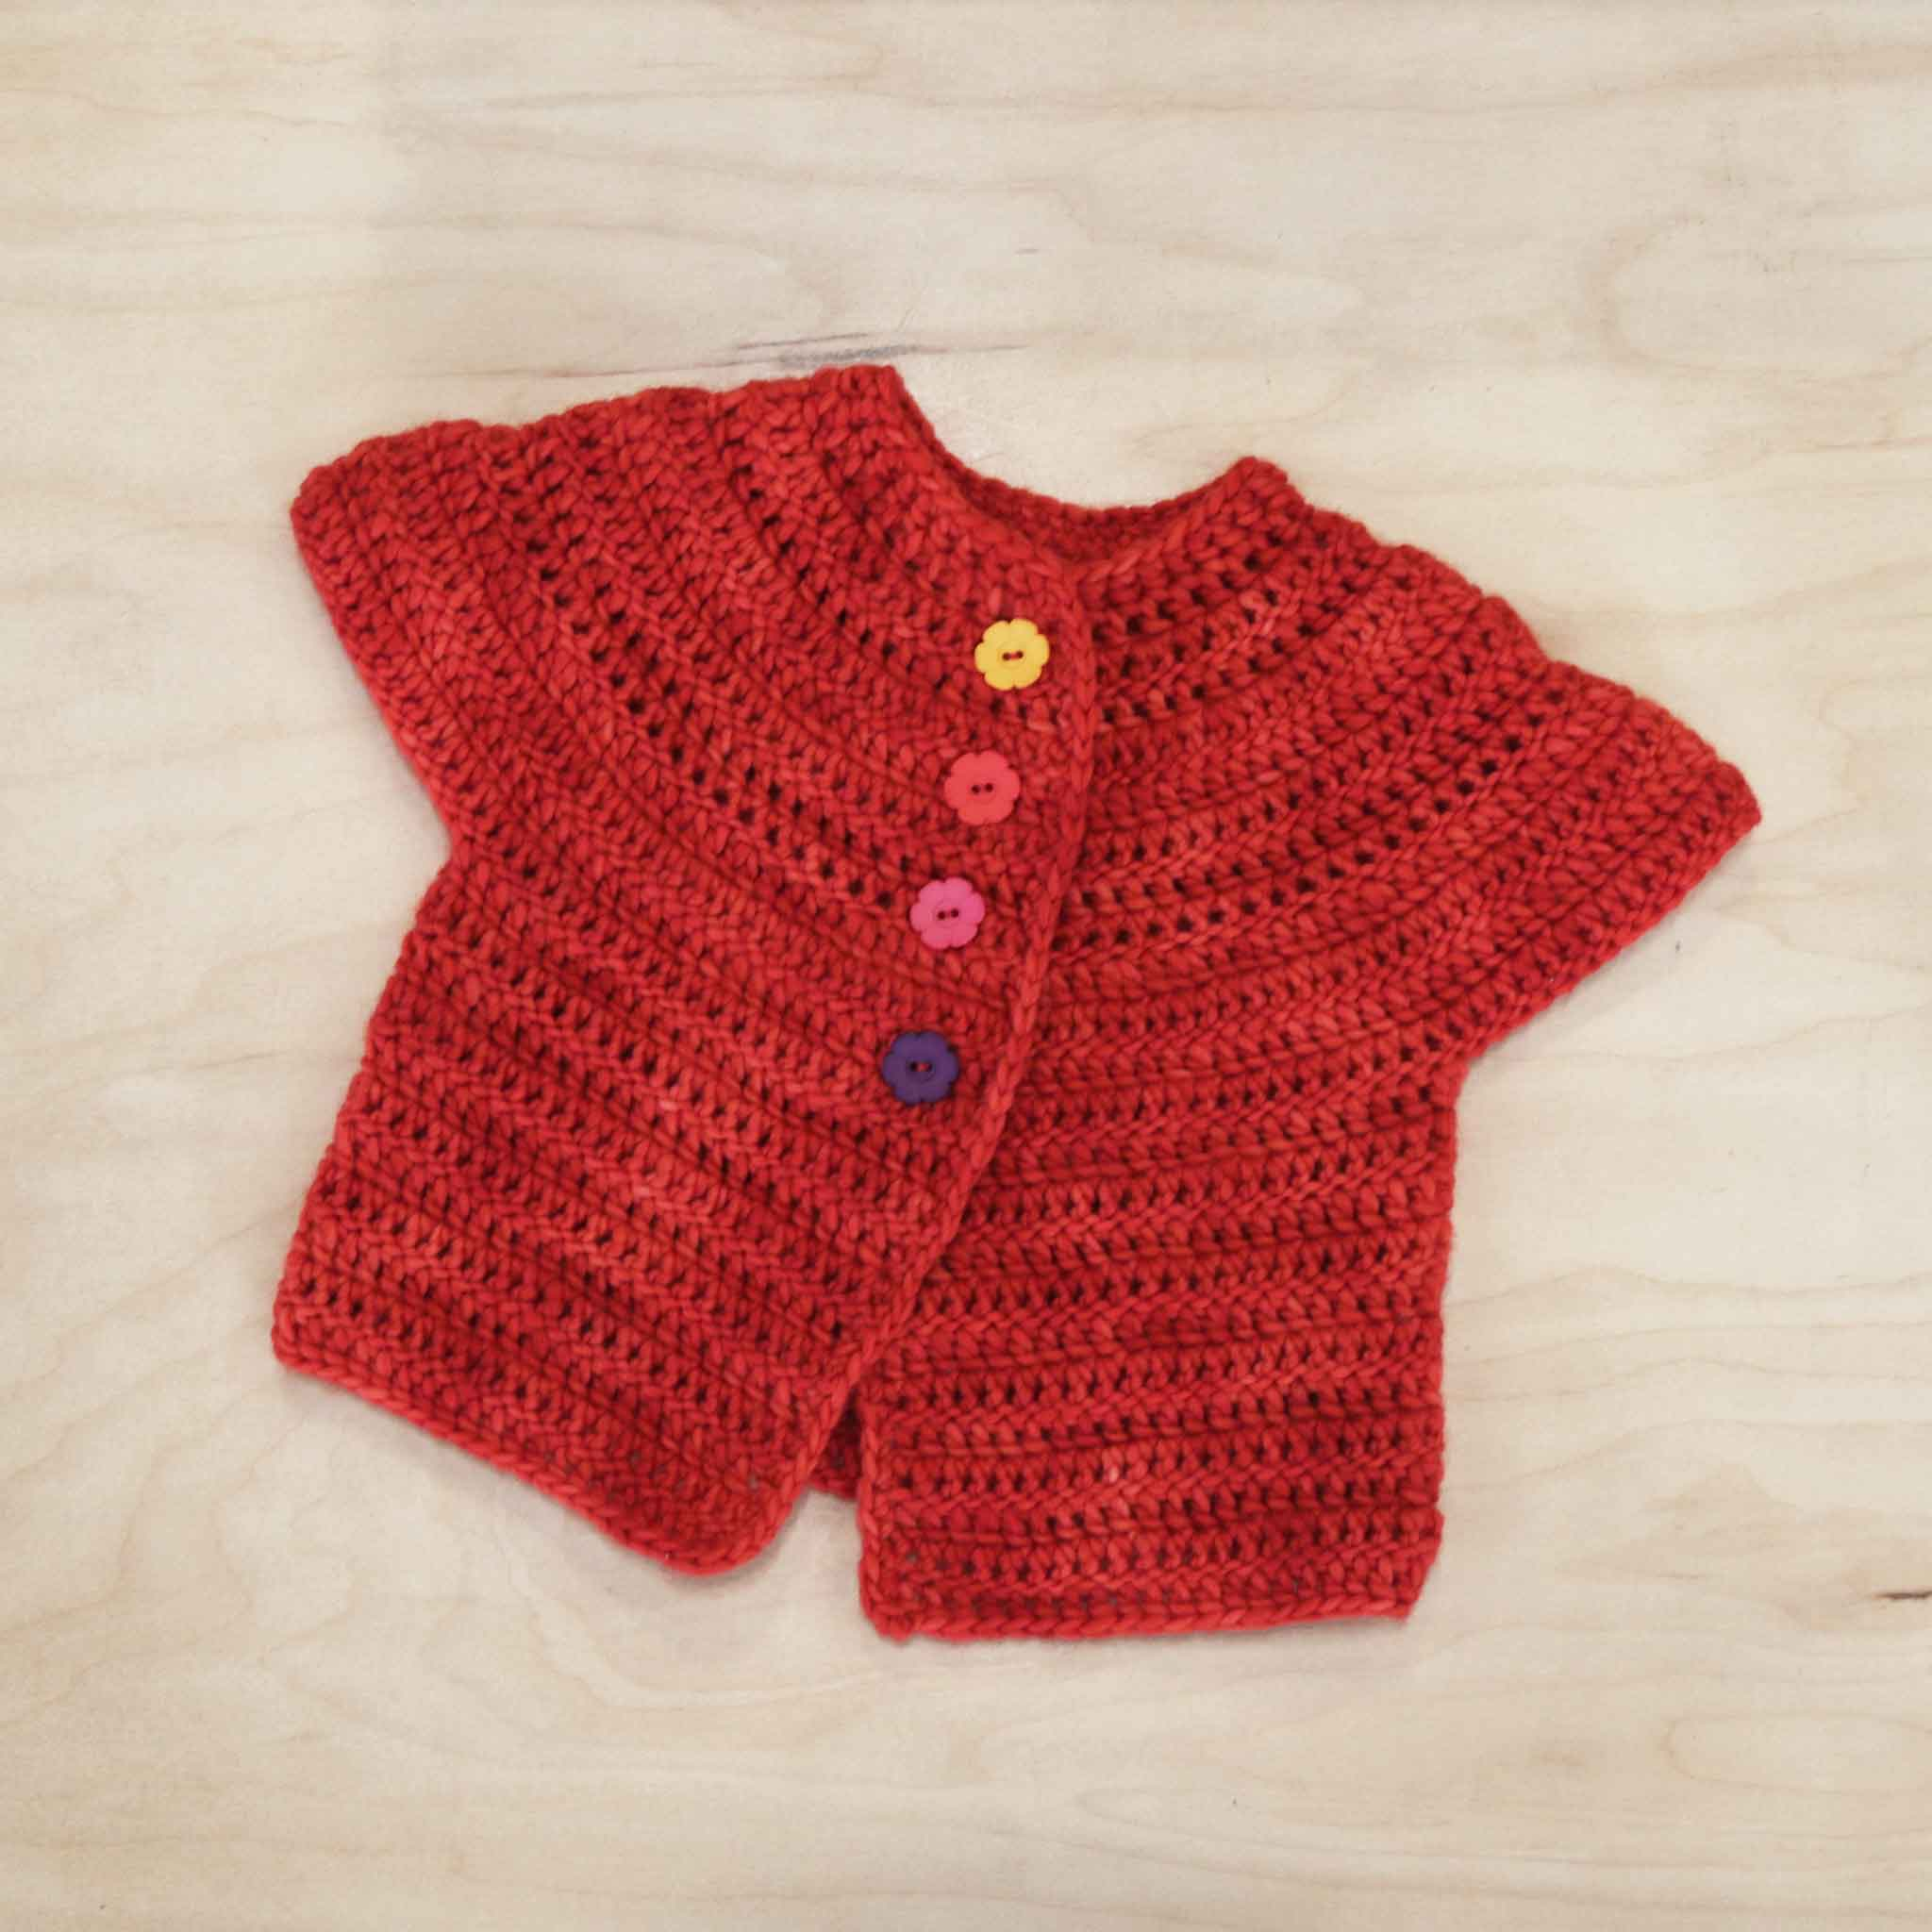 Crochet Baby Cardigan No. 1